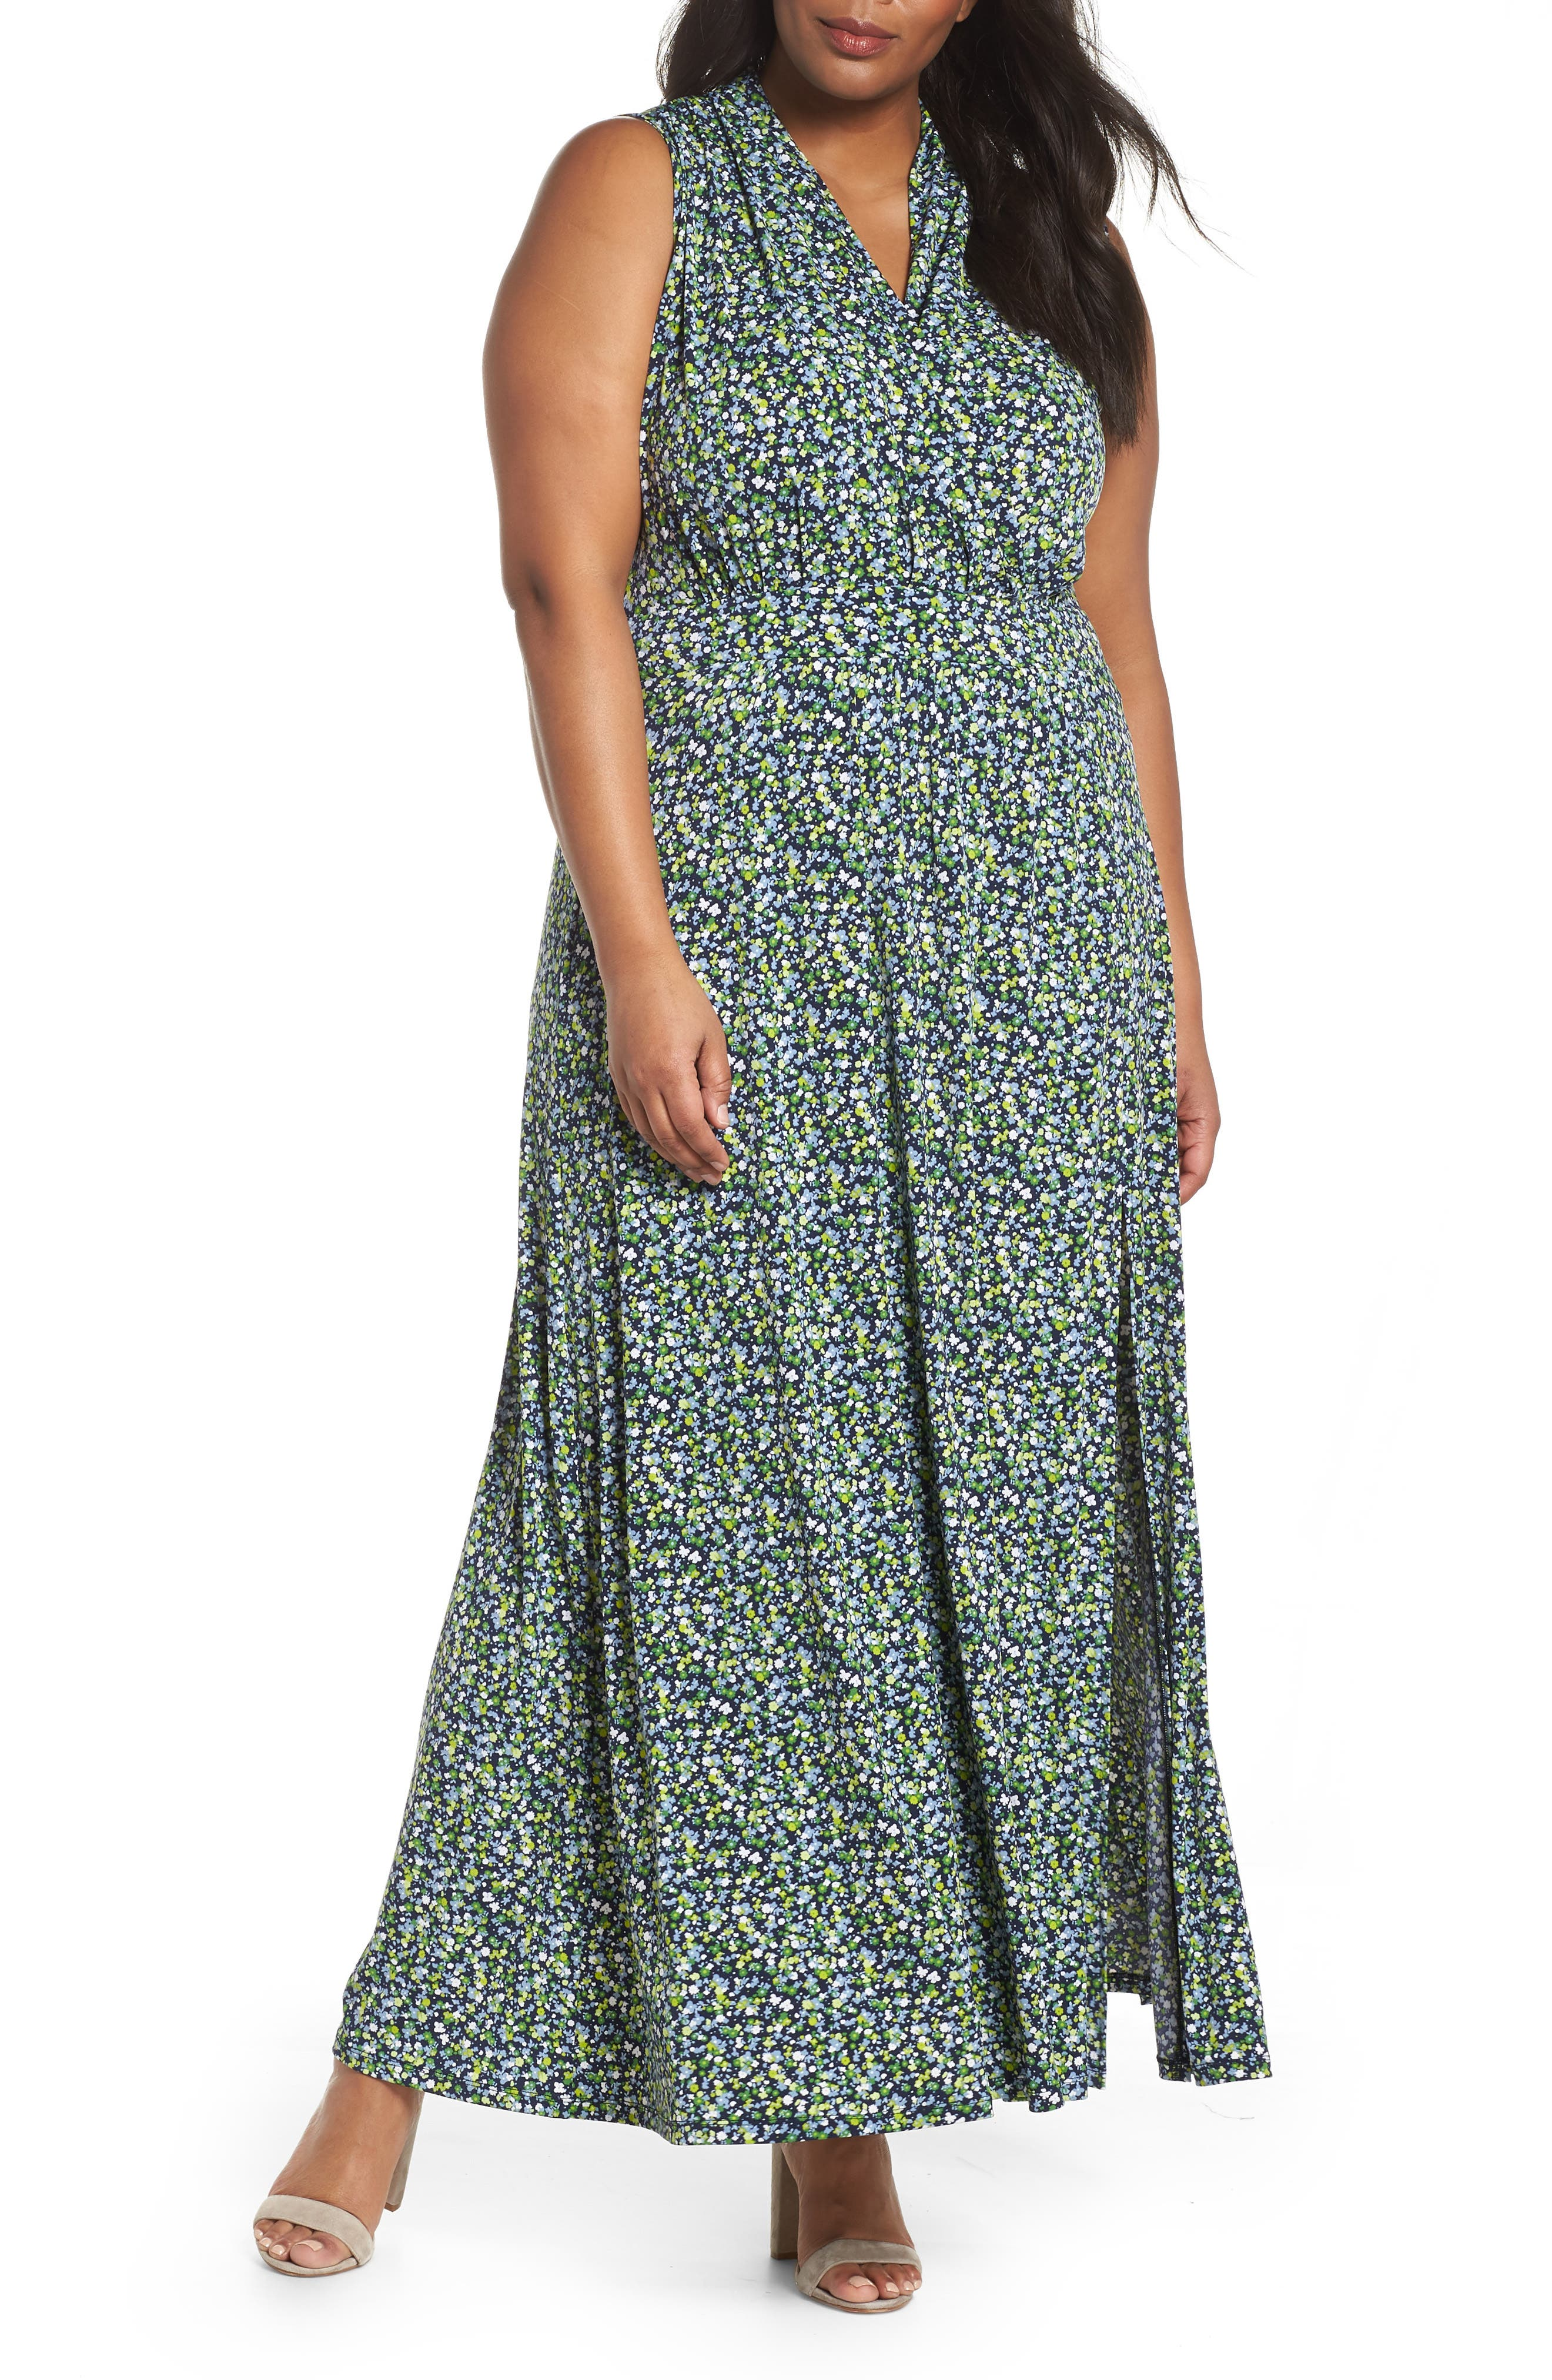 Wildflowers Maxi Dress,                             Main thumbnail 1, color,                             462